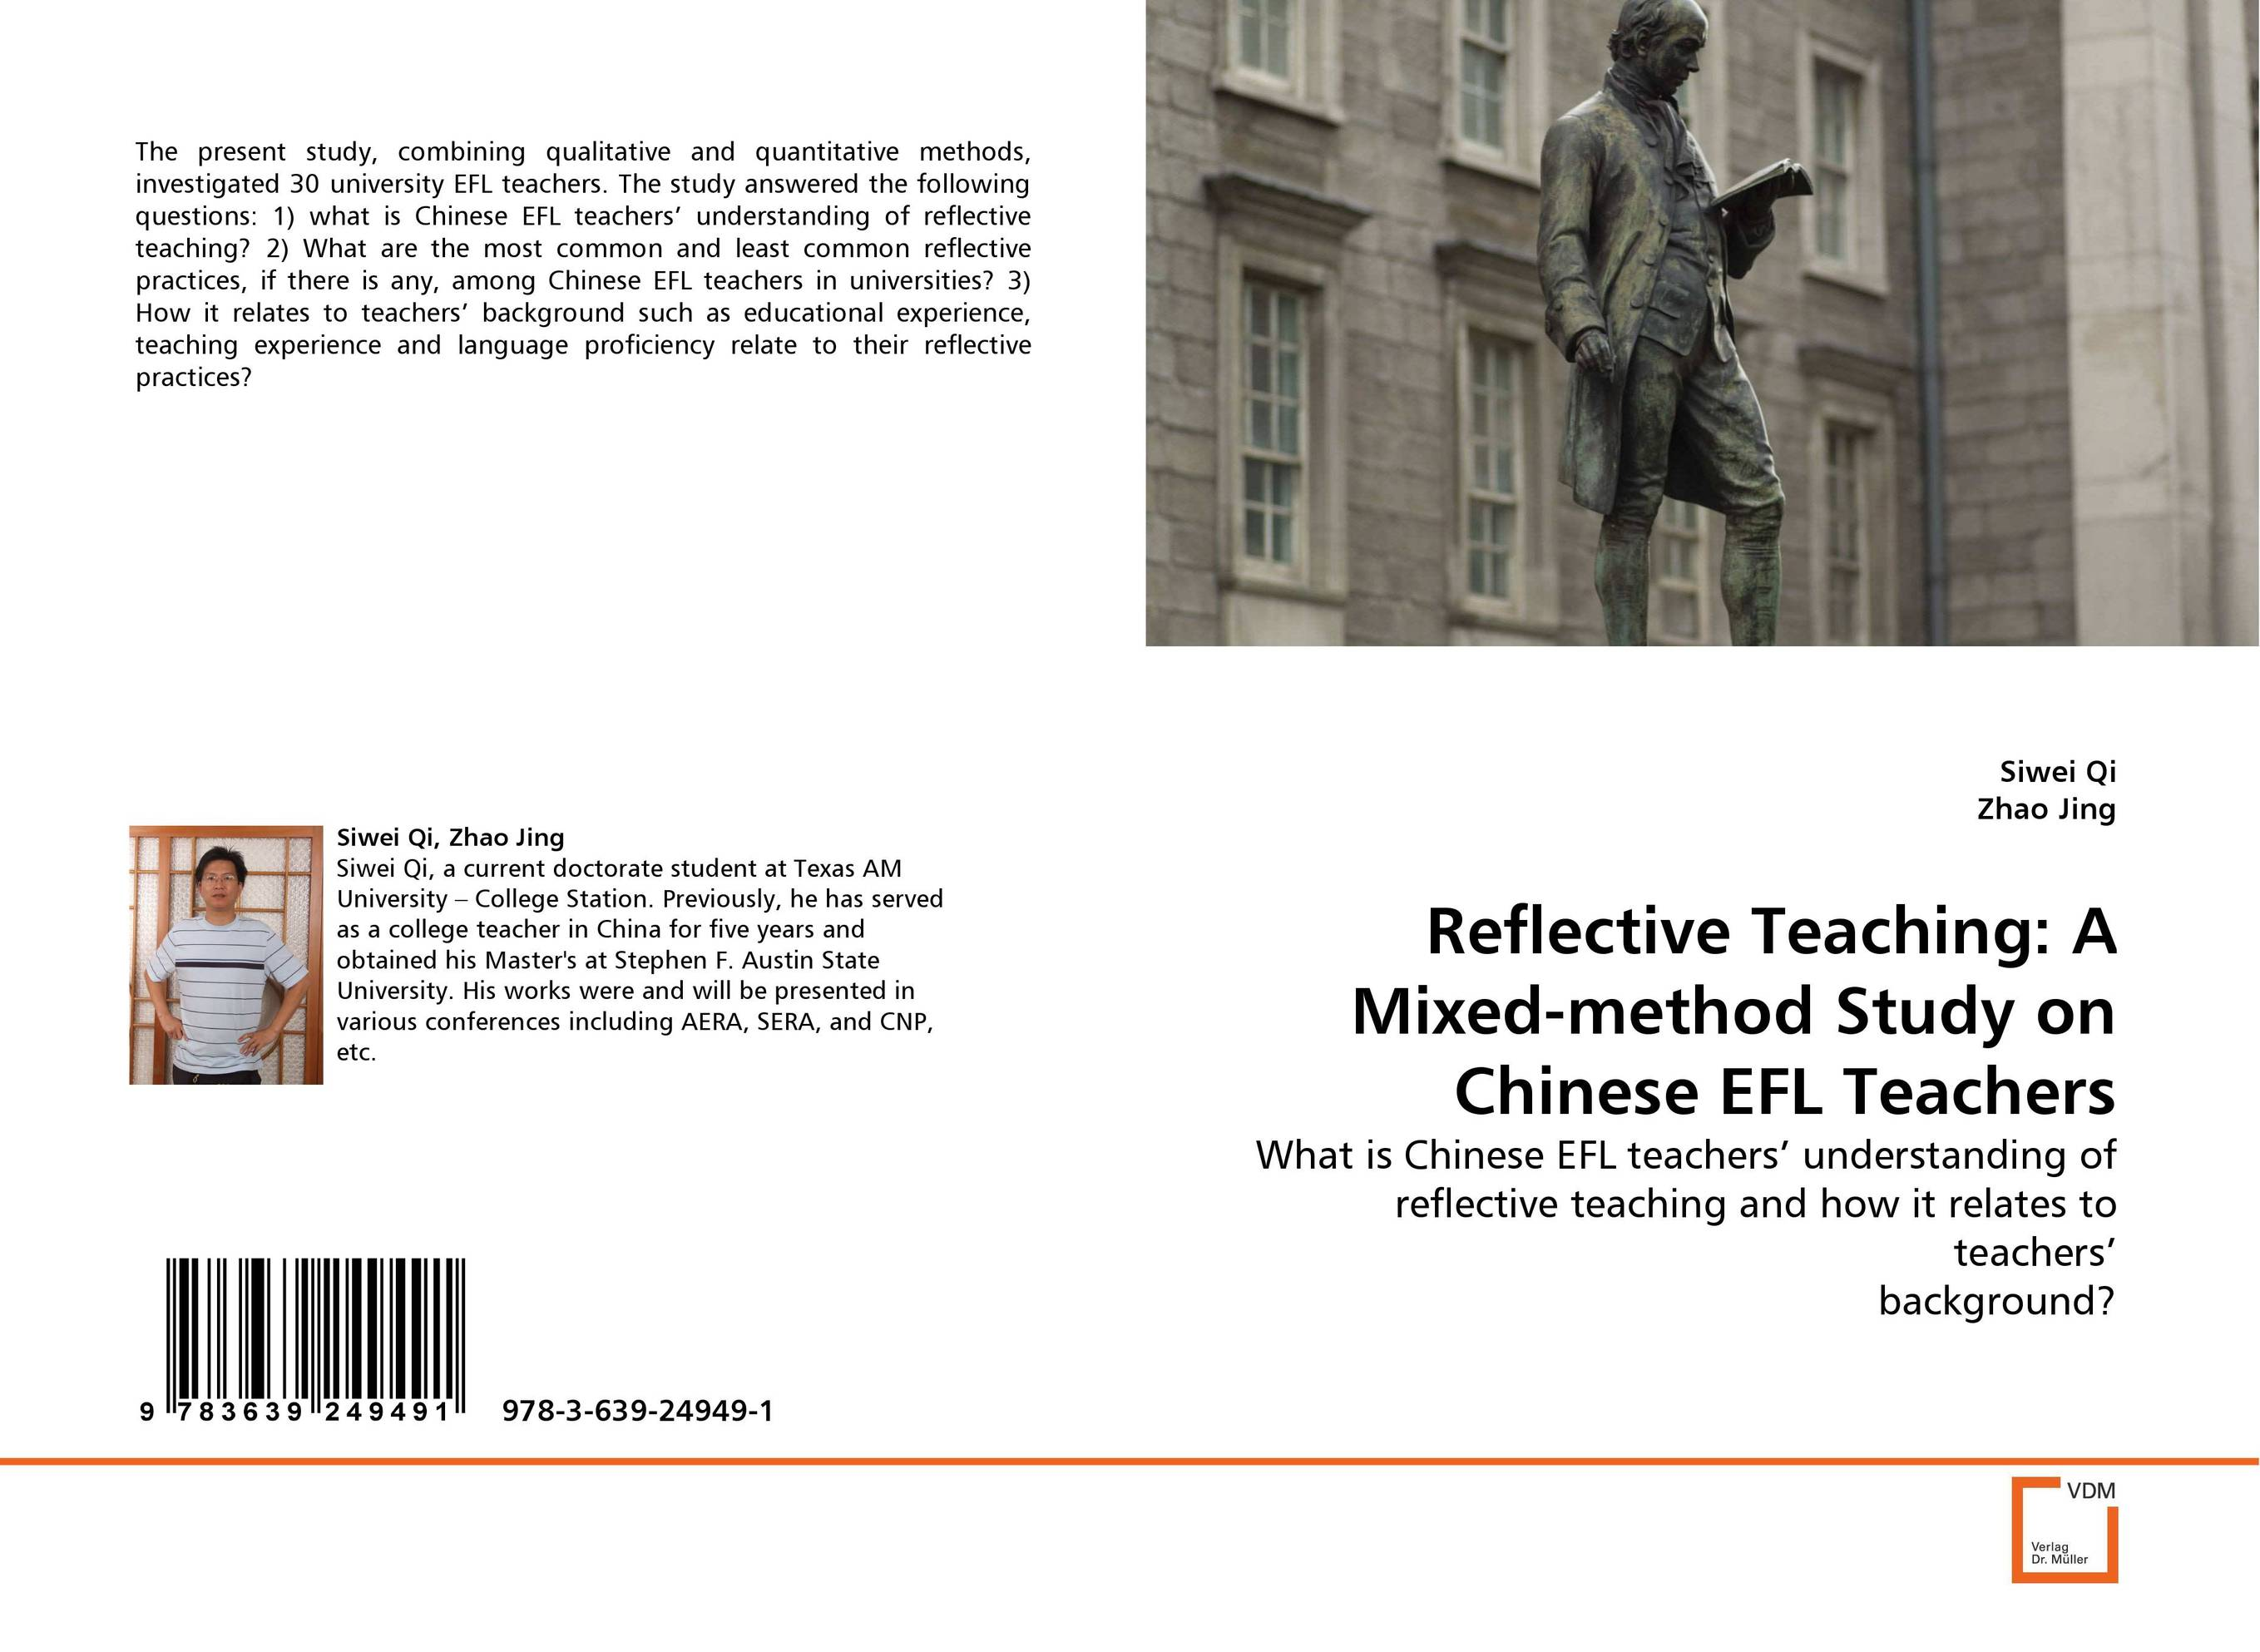 Reflective Teaching: A Mixed-method Study on Chinese EFL Teachers rakesh kumar tiwari and rajendra prasad ojha conformation and stability of mixed dna triplex